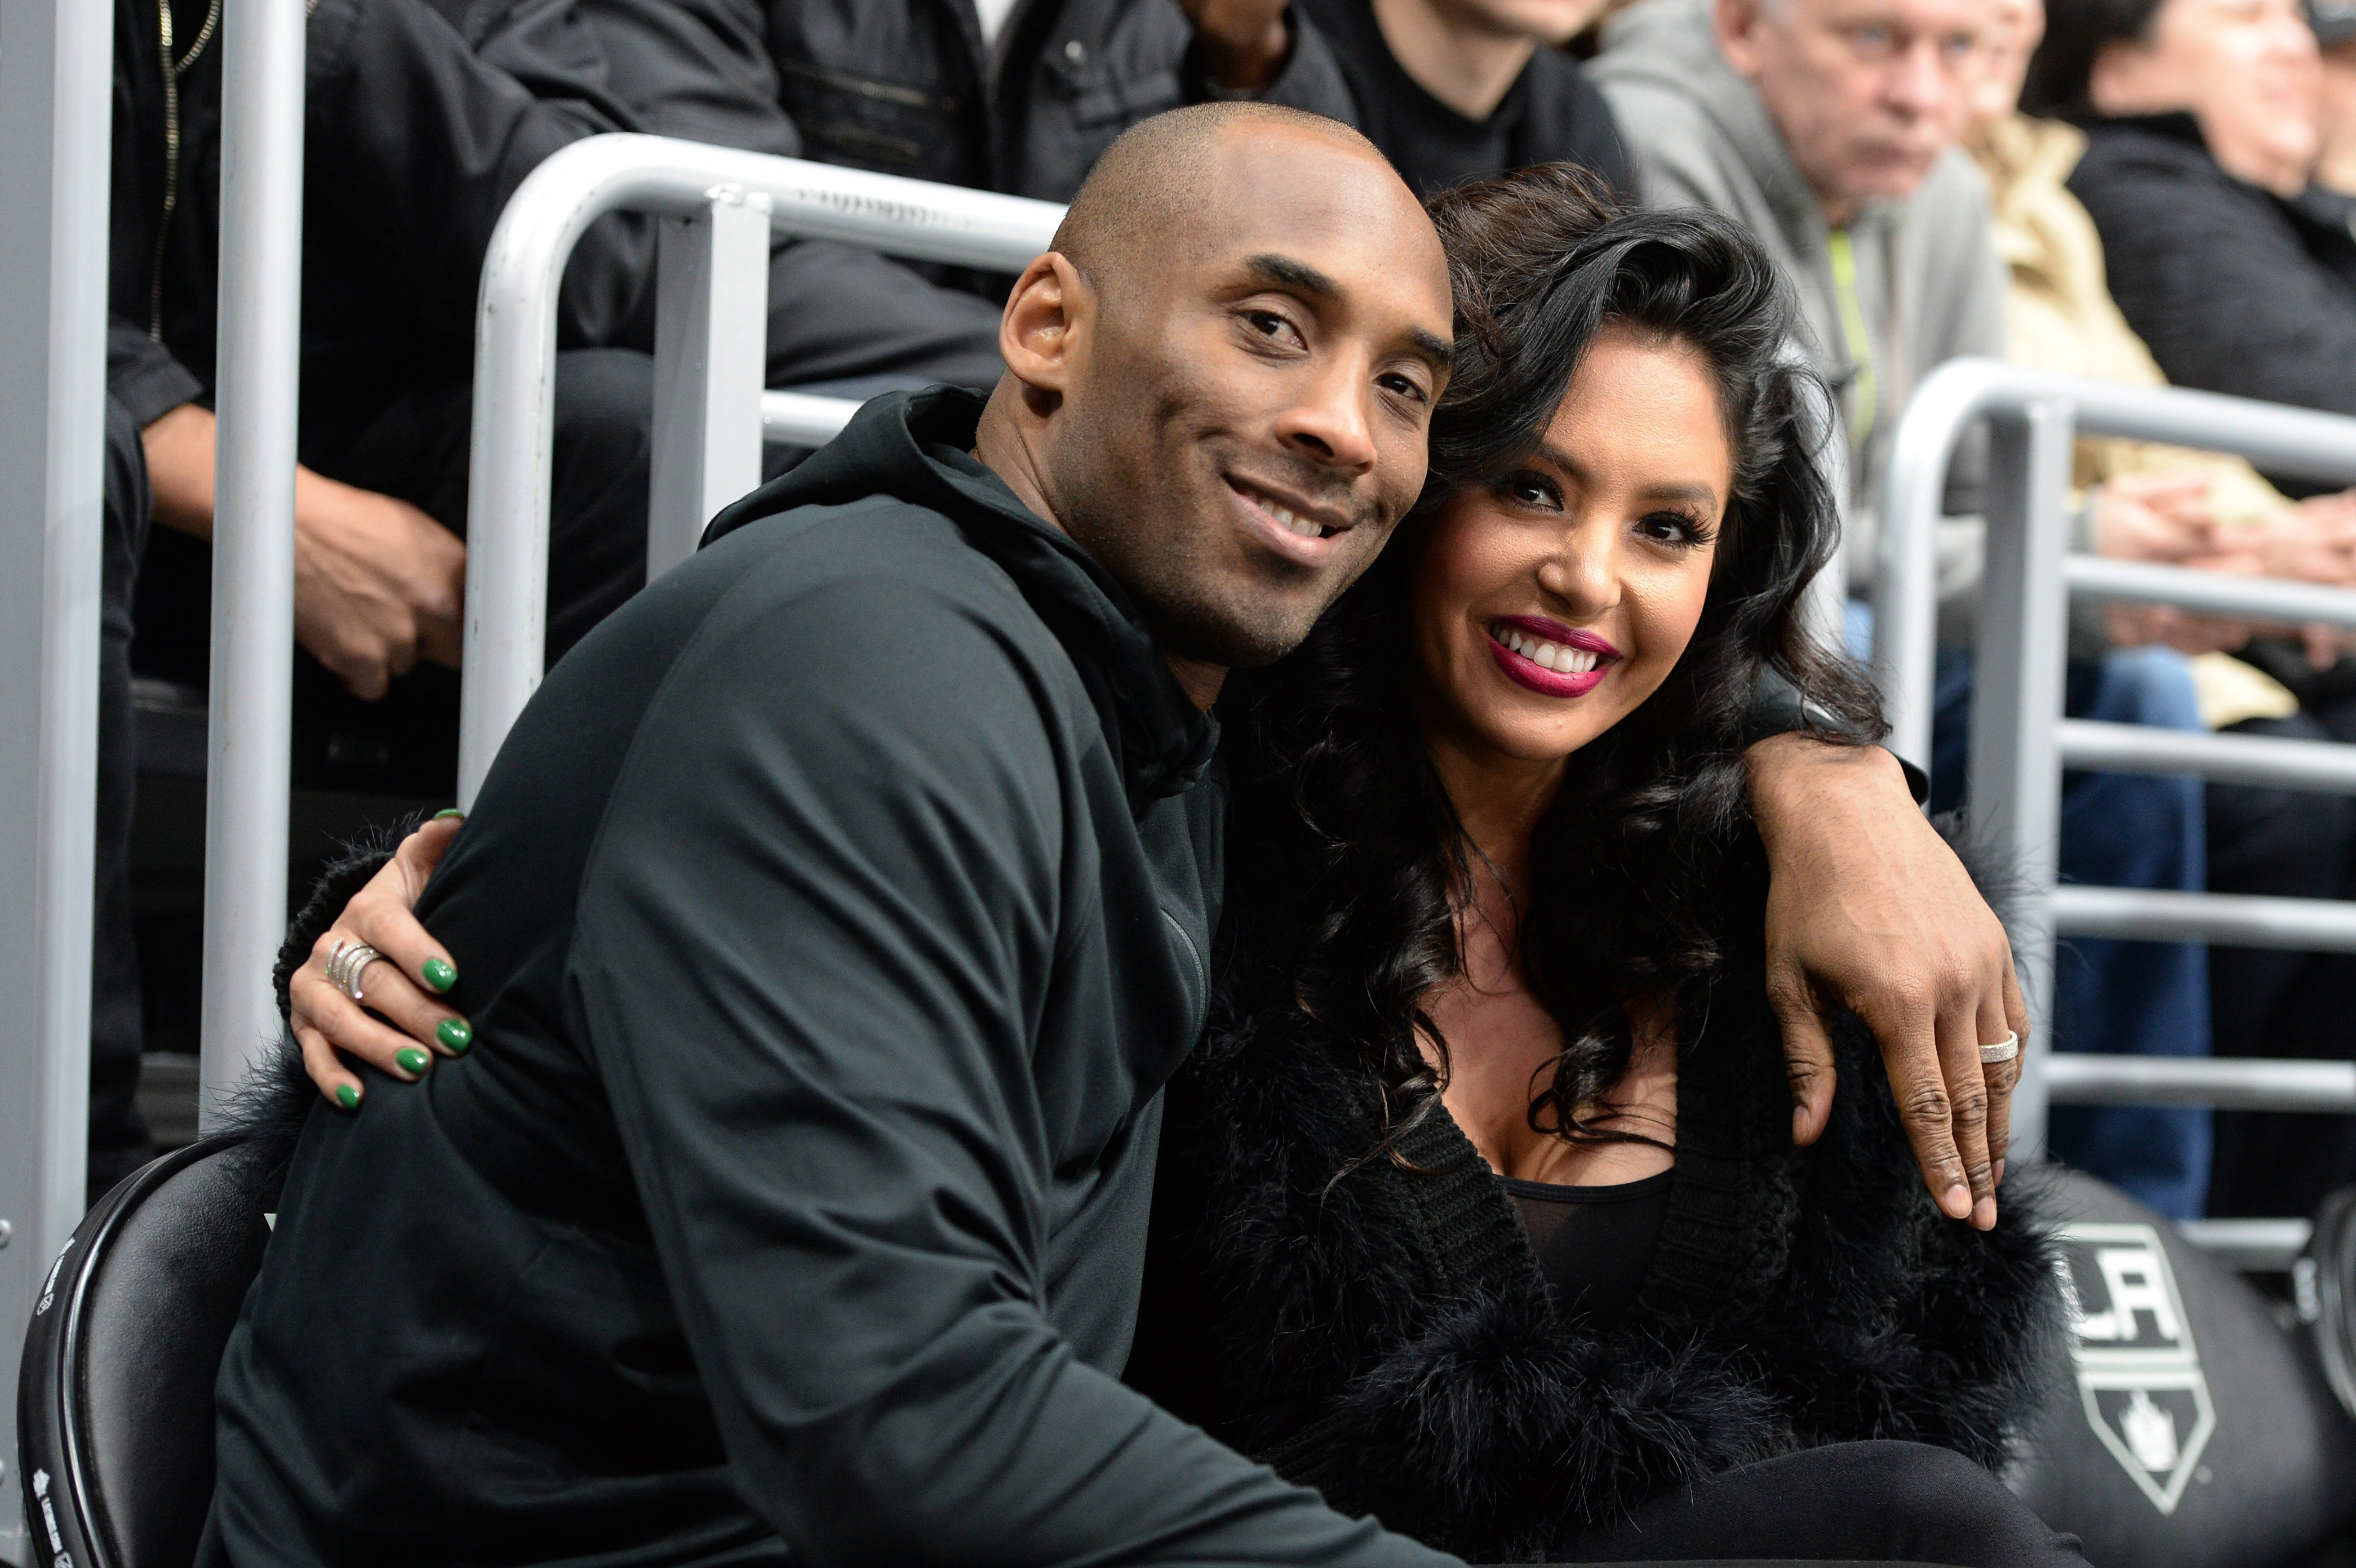 Image Source: Getty Images/Kobe Bryant and wife, Vanessa